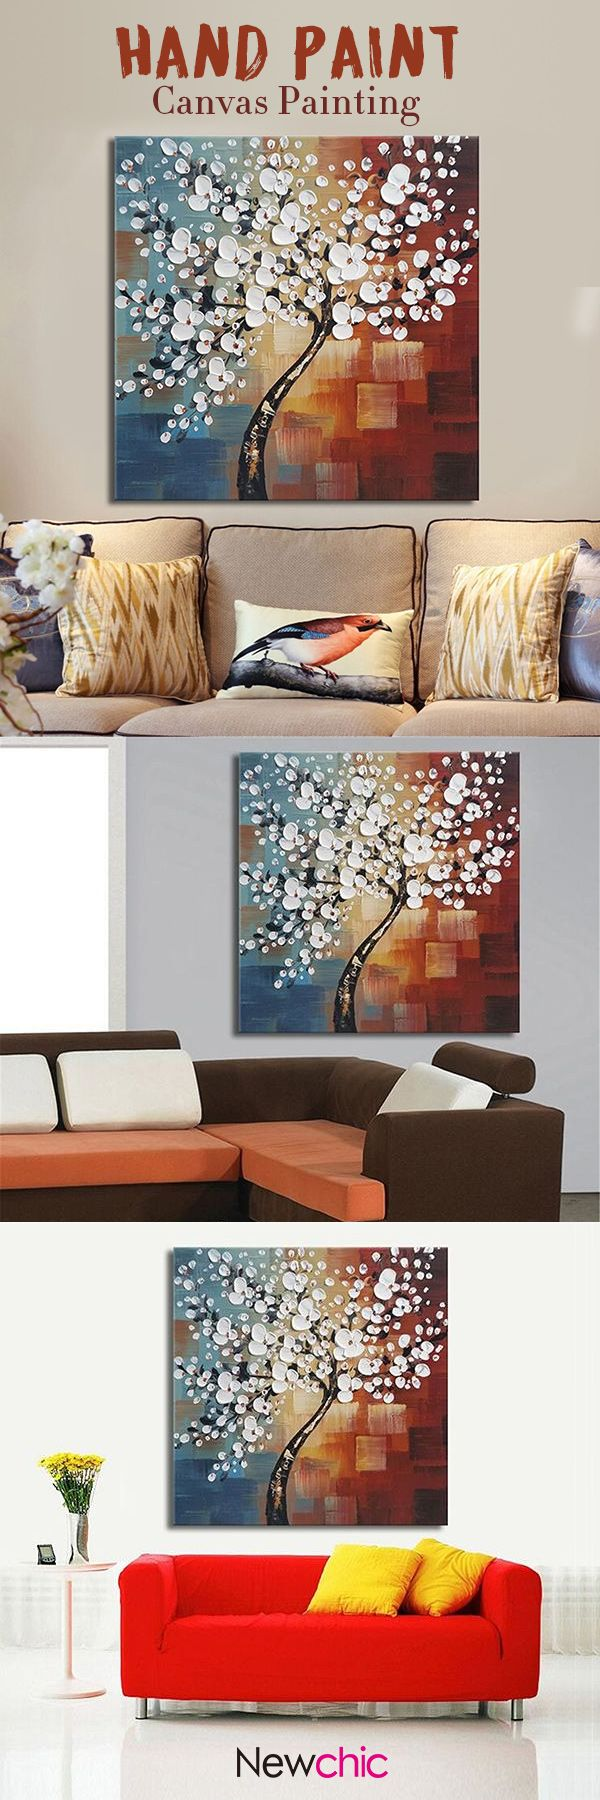 US800 Framed Hand Paint Canvas Painting Home Decor Wall Art Abstract Flower Tree Decoration